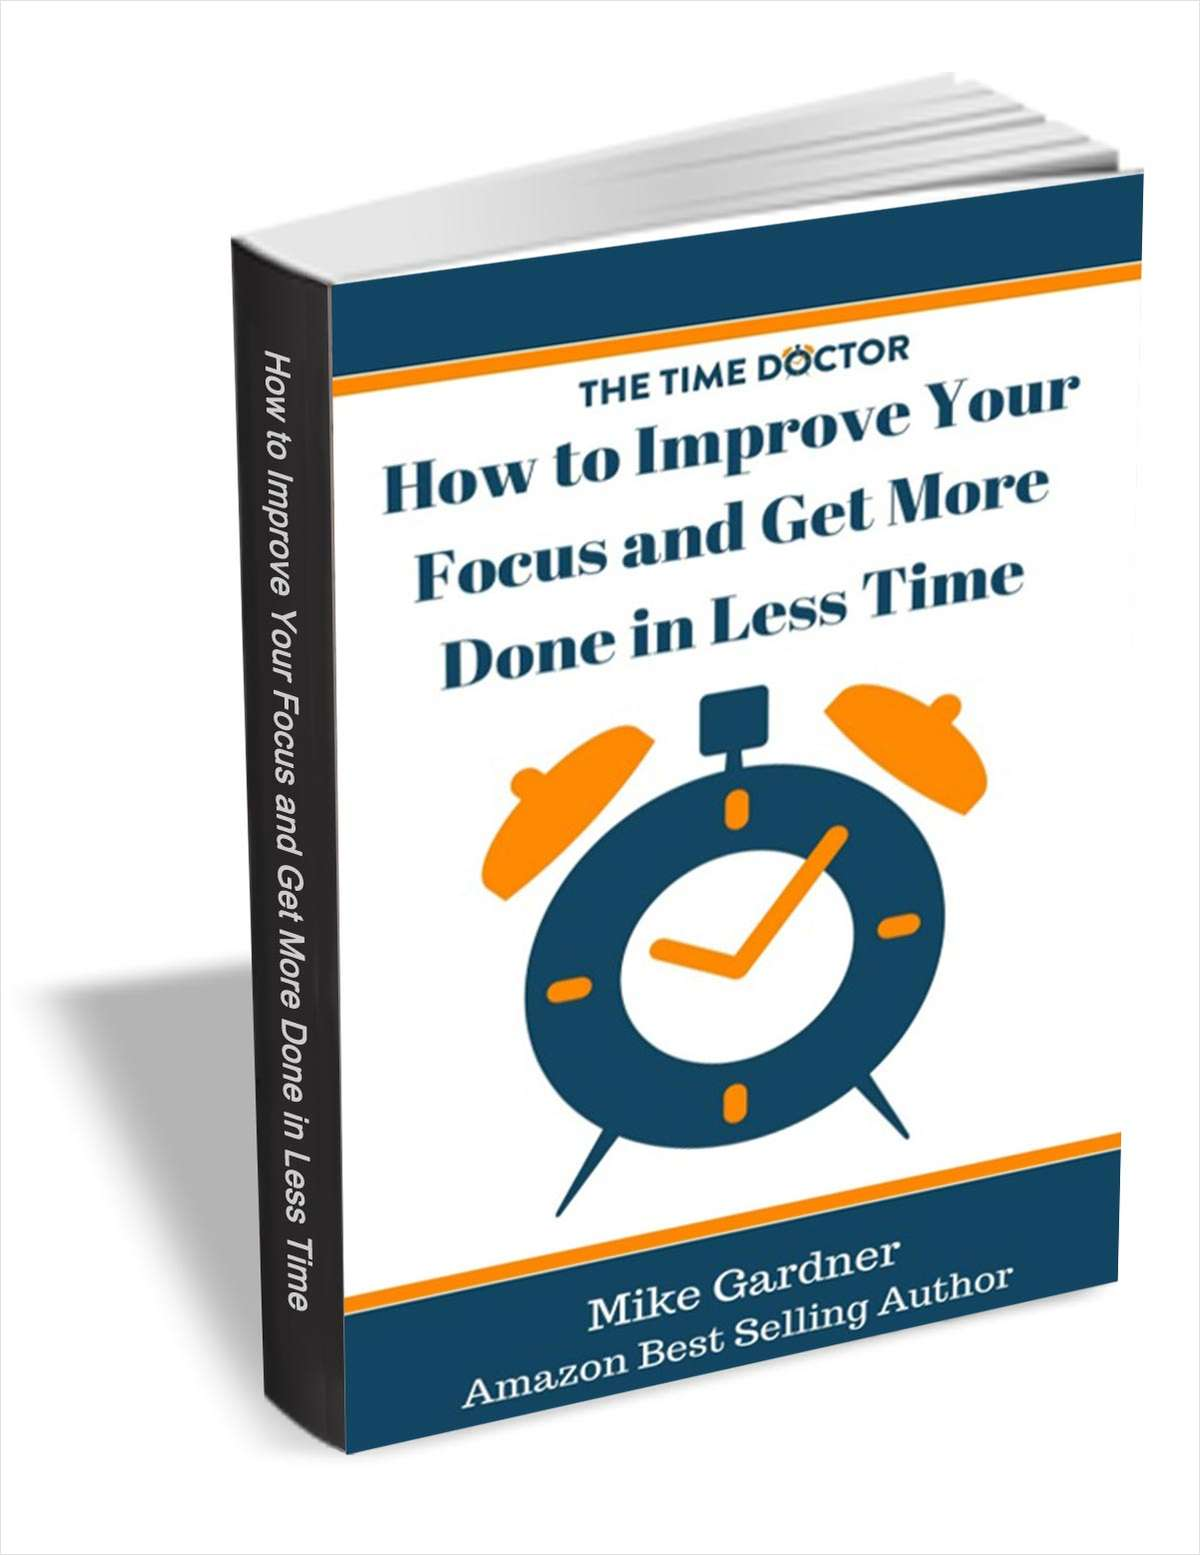 How to Improve Your Focus and Get More Done in Less Time